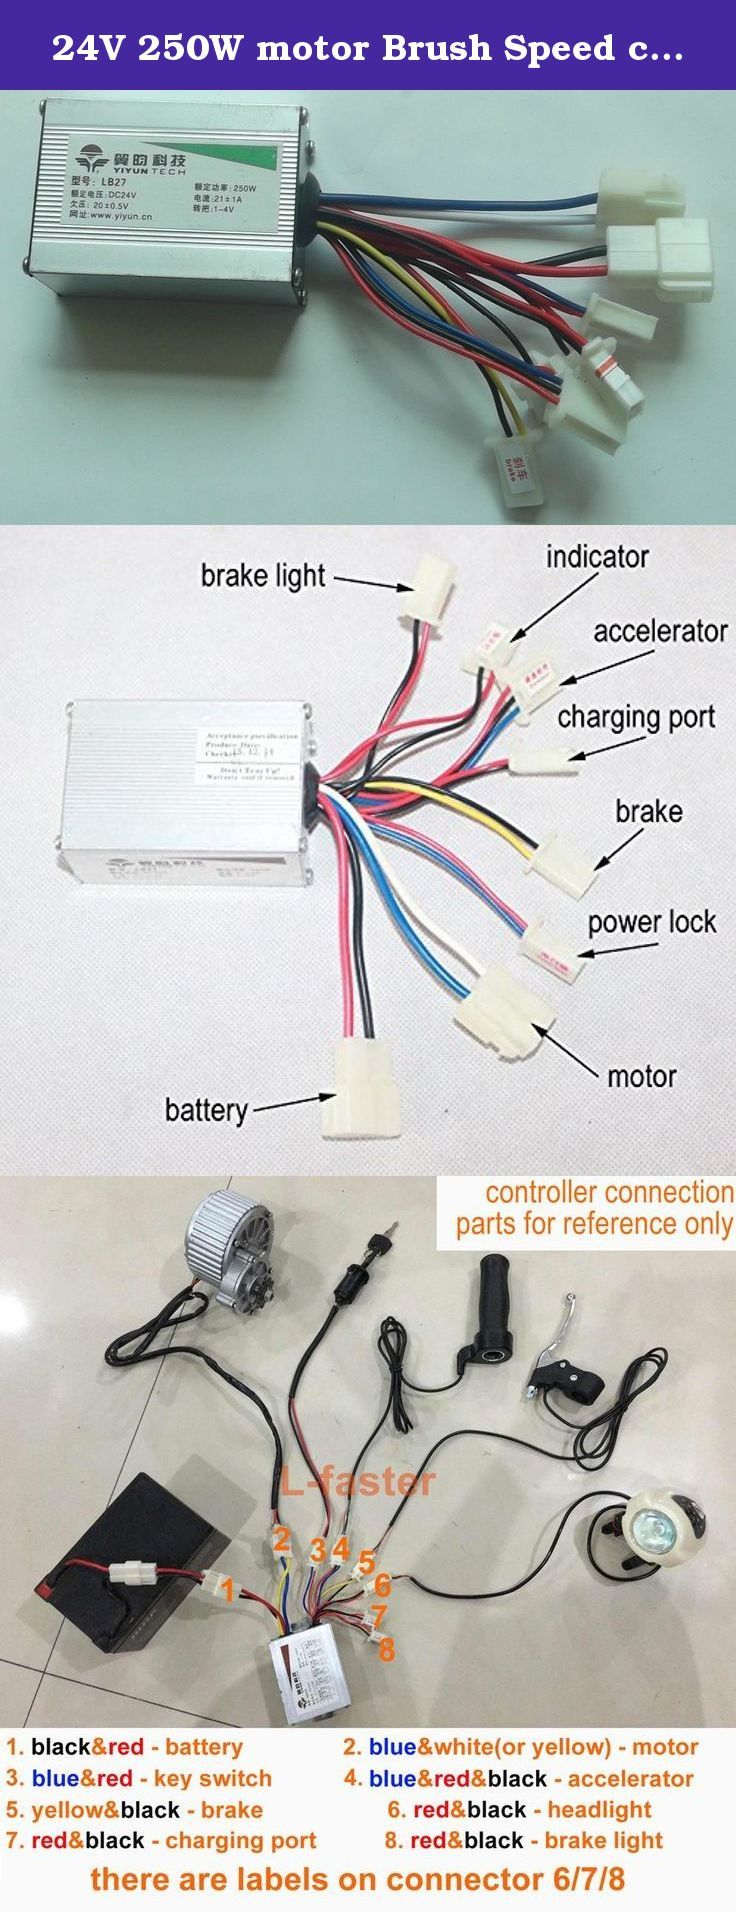 24v 250w Motor Brush Speed Controller For Electric Bike Bicycle Cozy Trike Wiring Diagram Scooter This Item Is